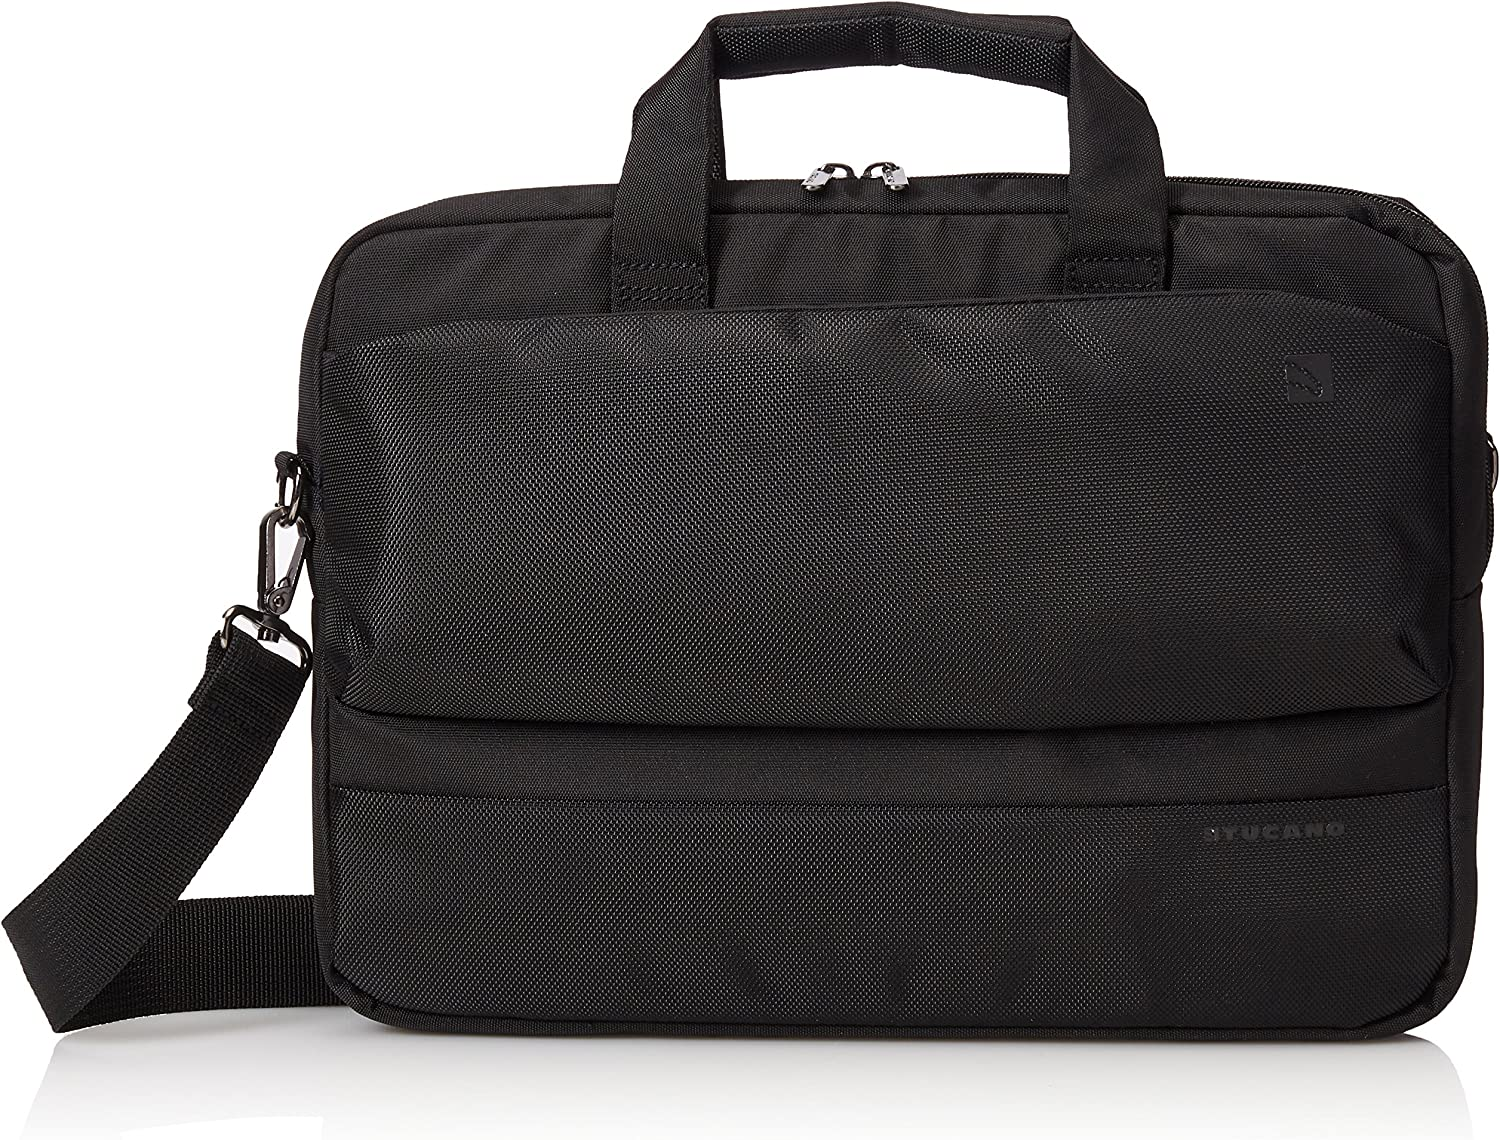 Tucano Dritta Slim Laptop Bag - 14 Inch (Black)